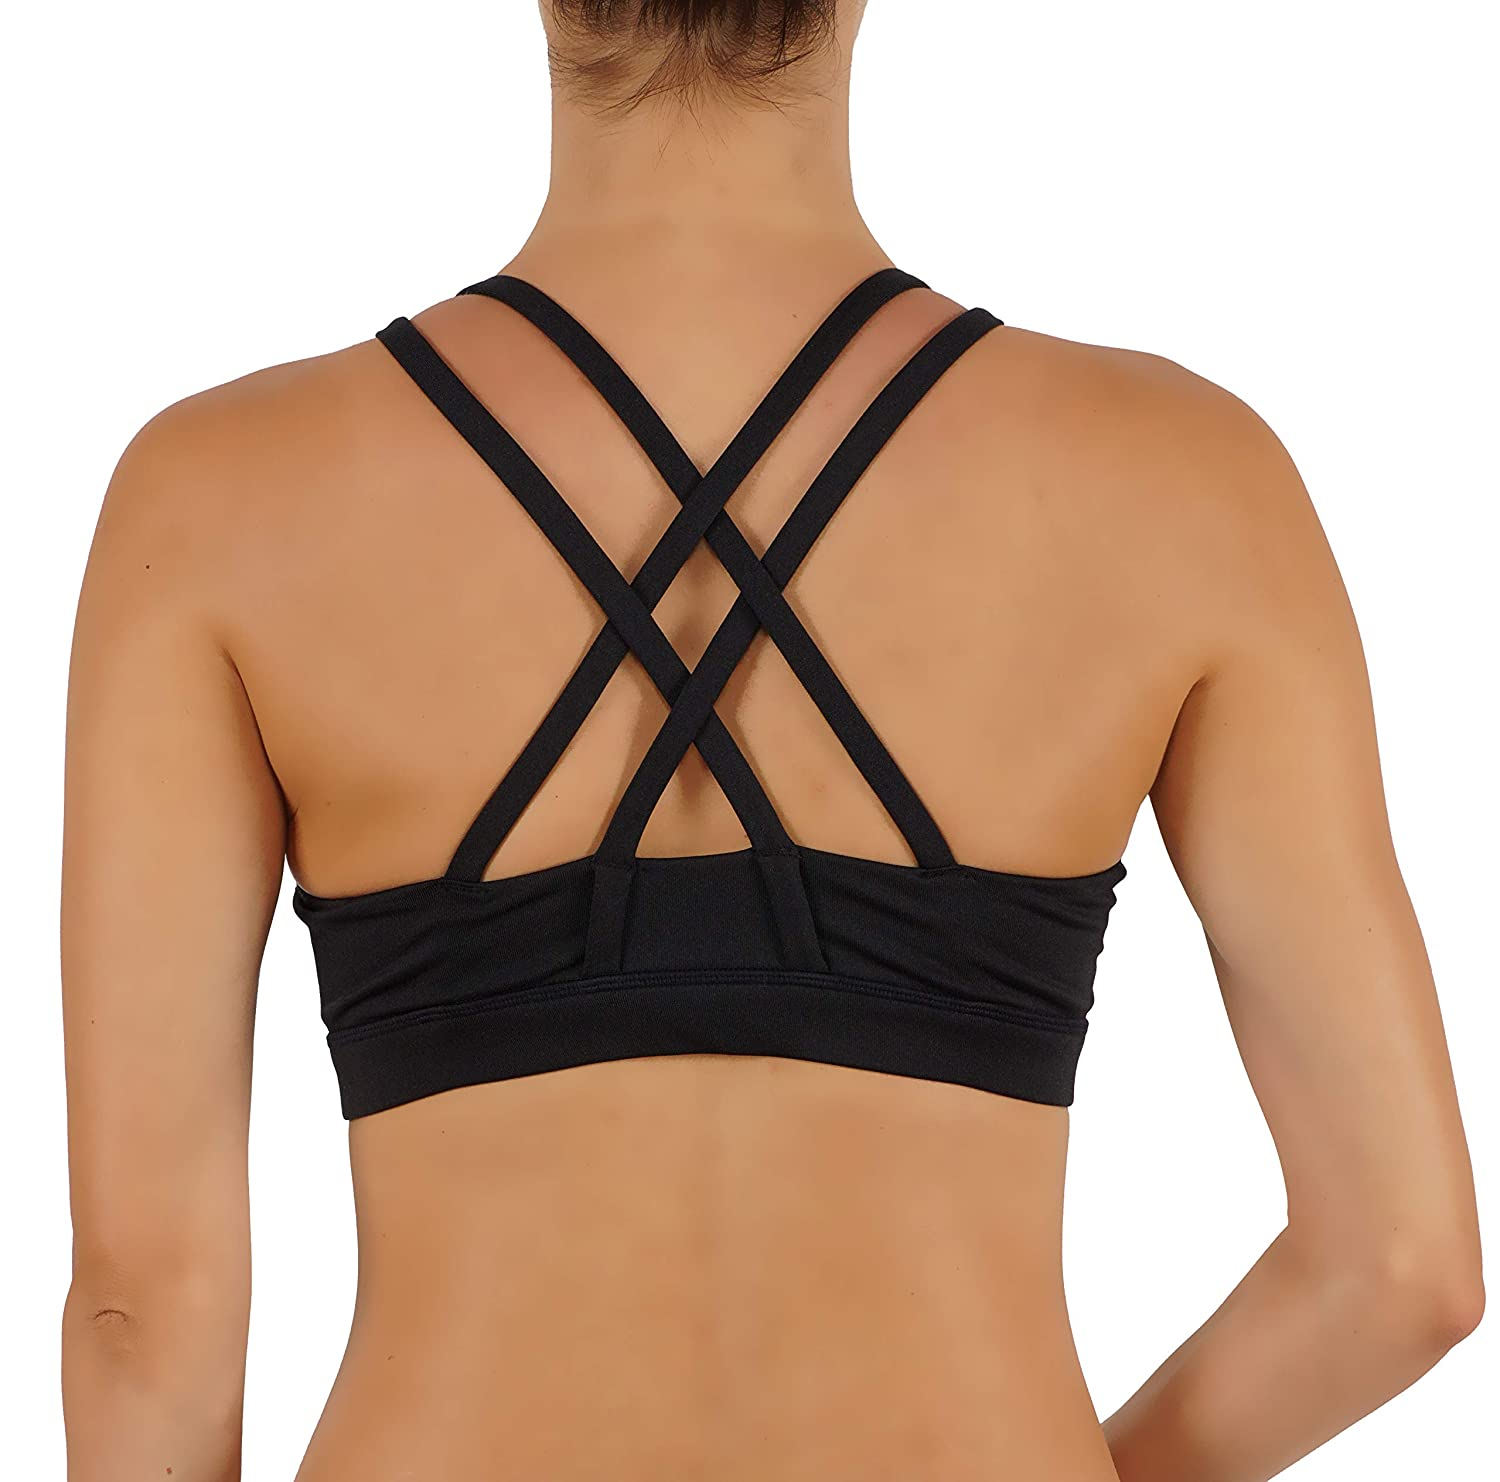 ROUGHRIVER Womens Yoga Bra Sports Top Features a Criss Cross Straps Back